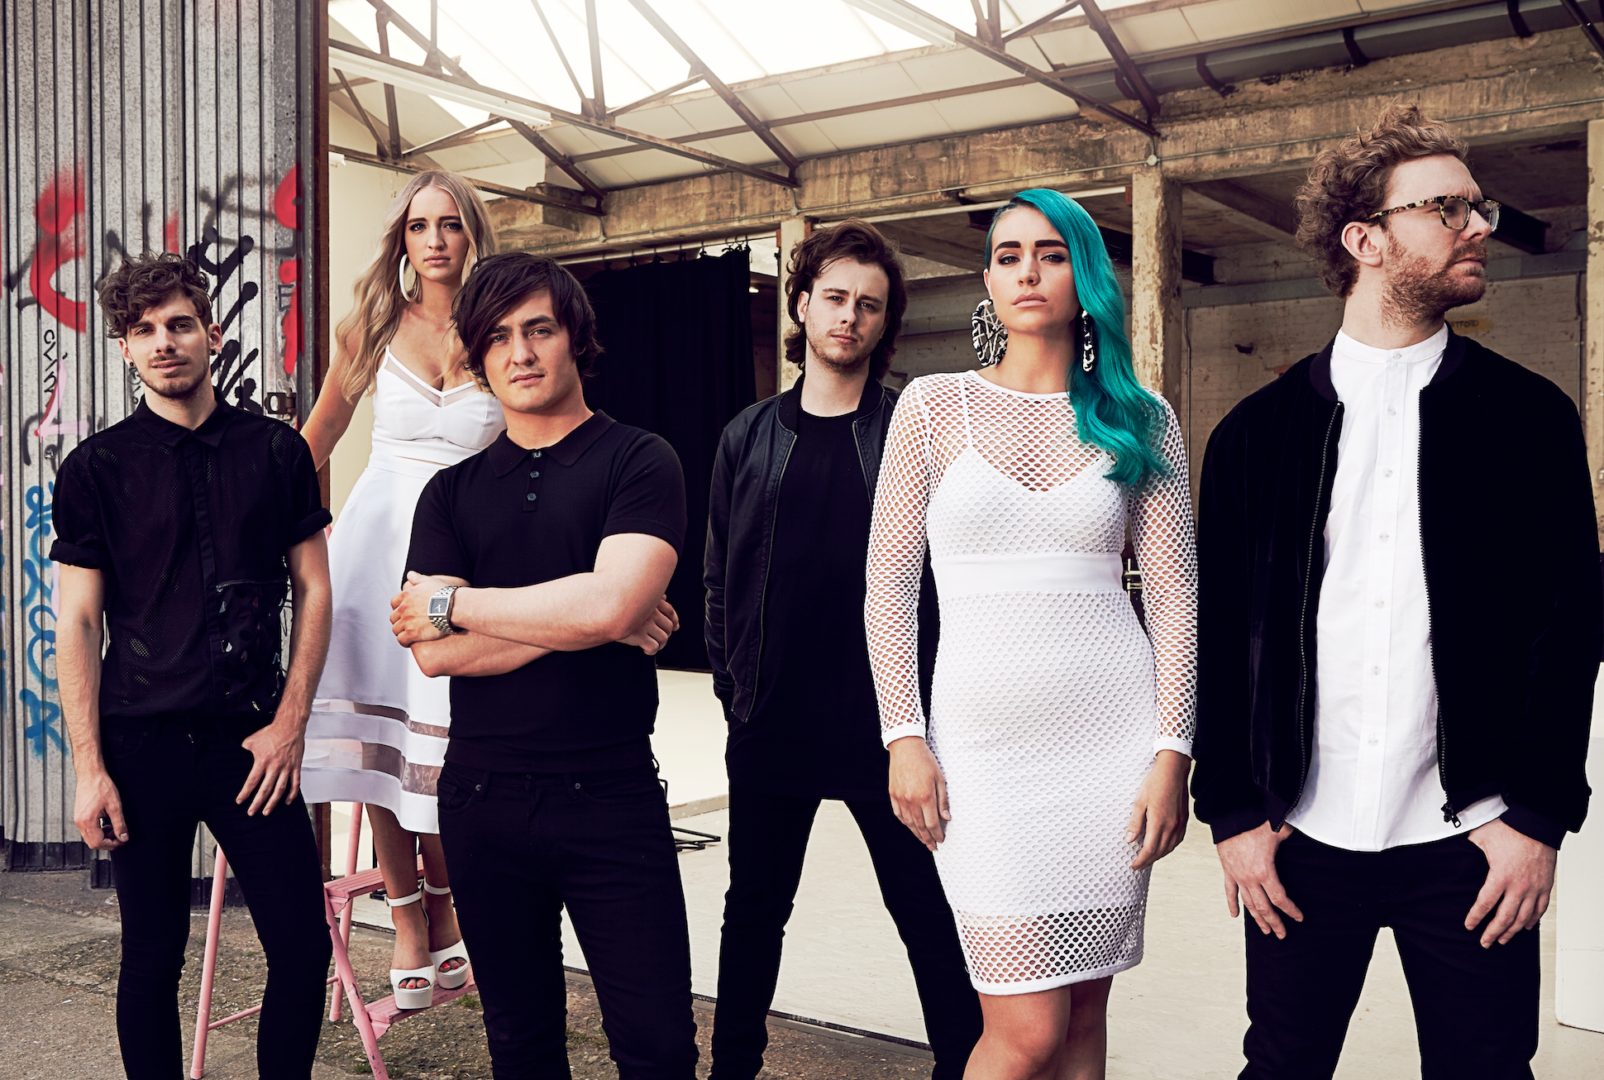 Sheppard Announces U.S. Summer Headline Tour